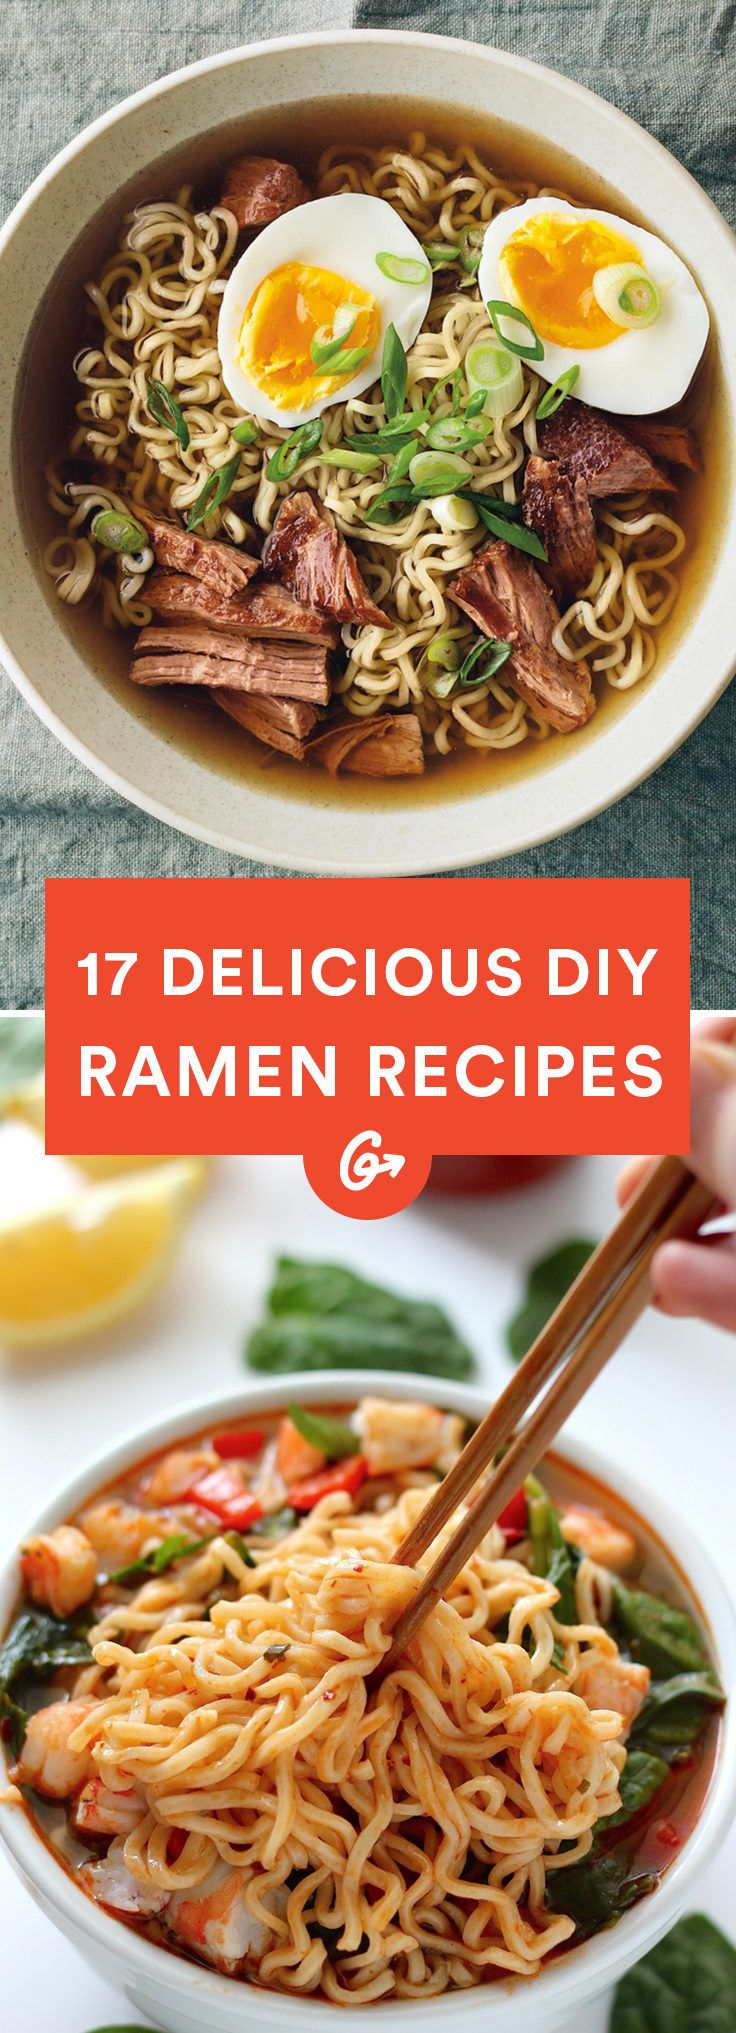 17. Beef Ramen Noodle Soup #healthy #ramen #recipes # http://greatist.com/eat/healthier-ramen-recipes